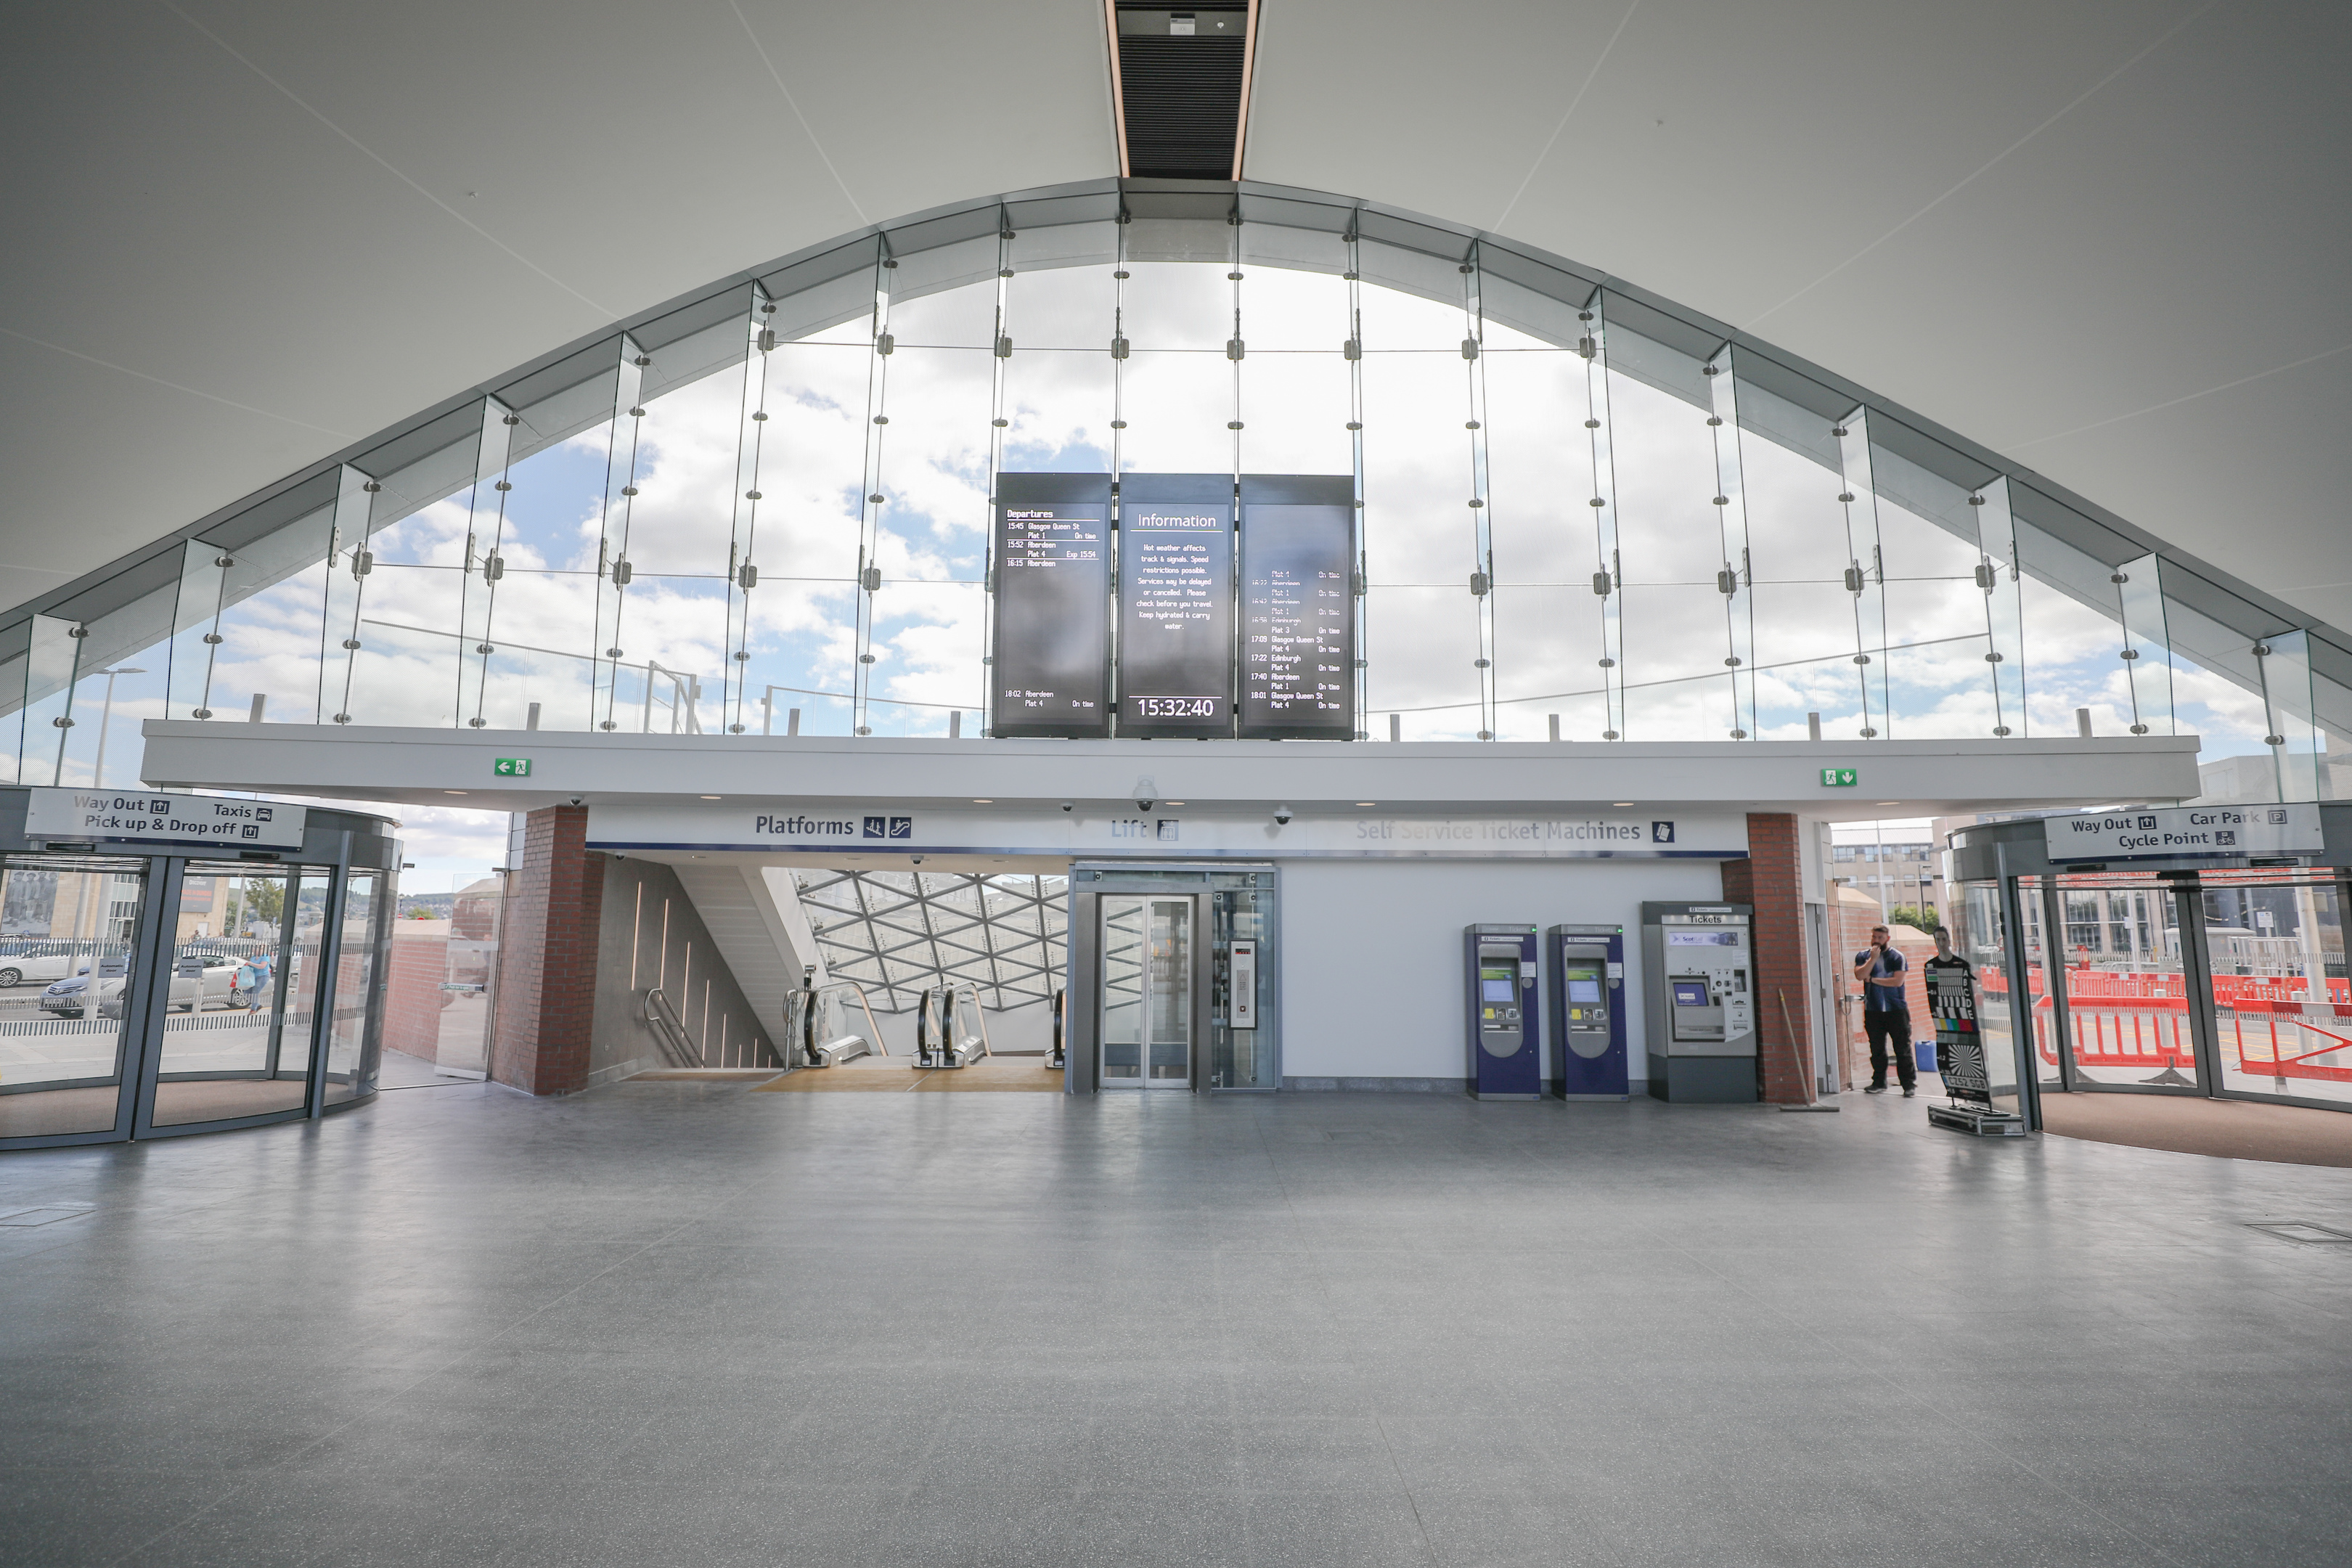 The new entrance to Dundee railway station, with the lift which was out of order to the right hand side of the stairs.